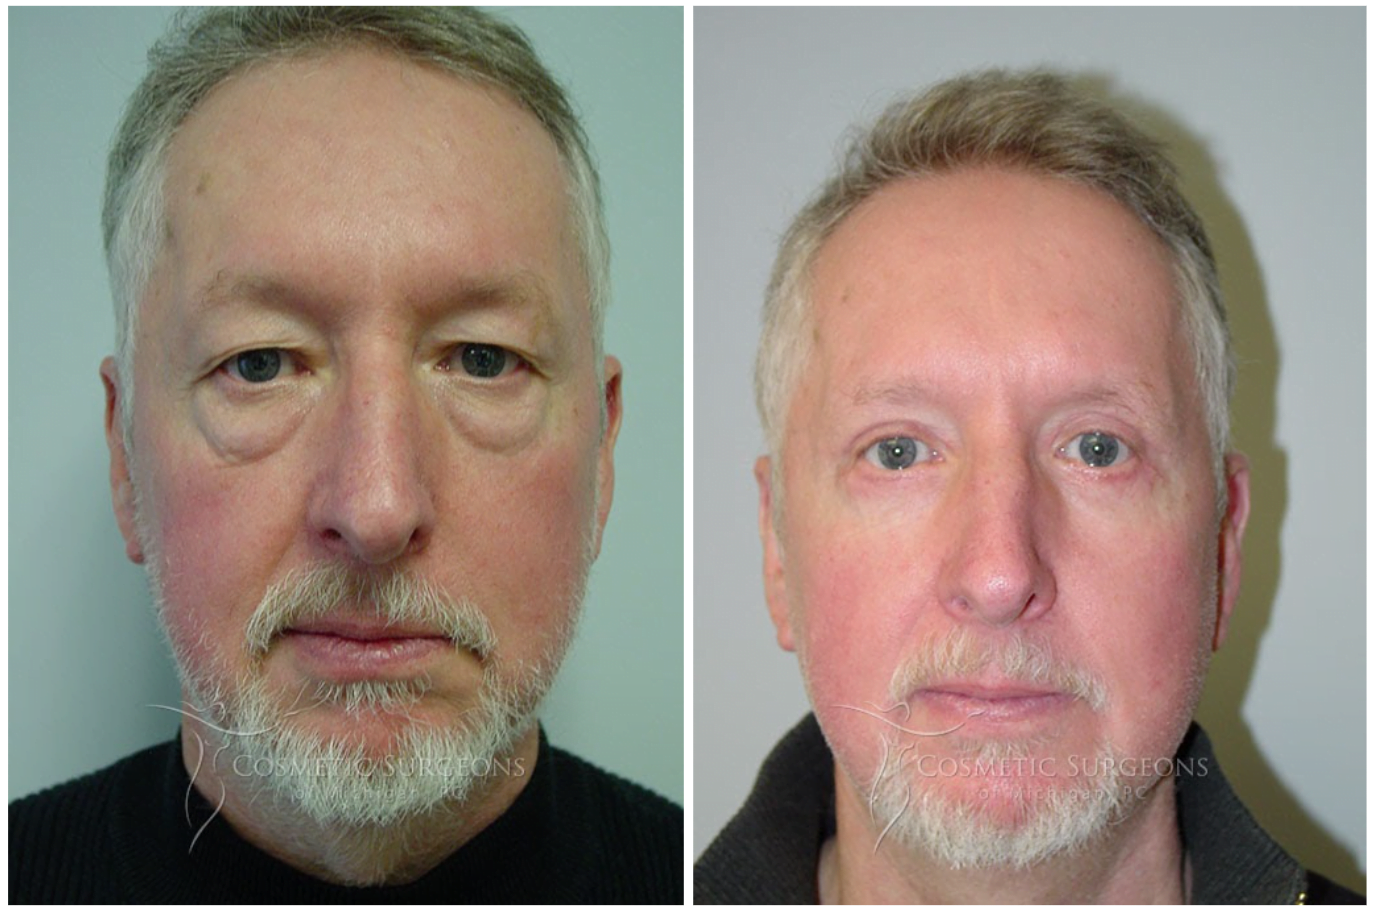 Actual male patient of Dr. Goffas Before and After Eyelid Lift Surgery